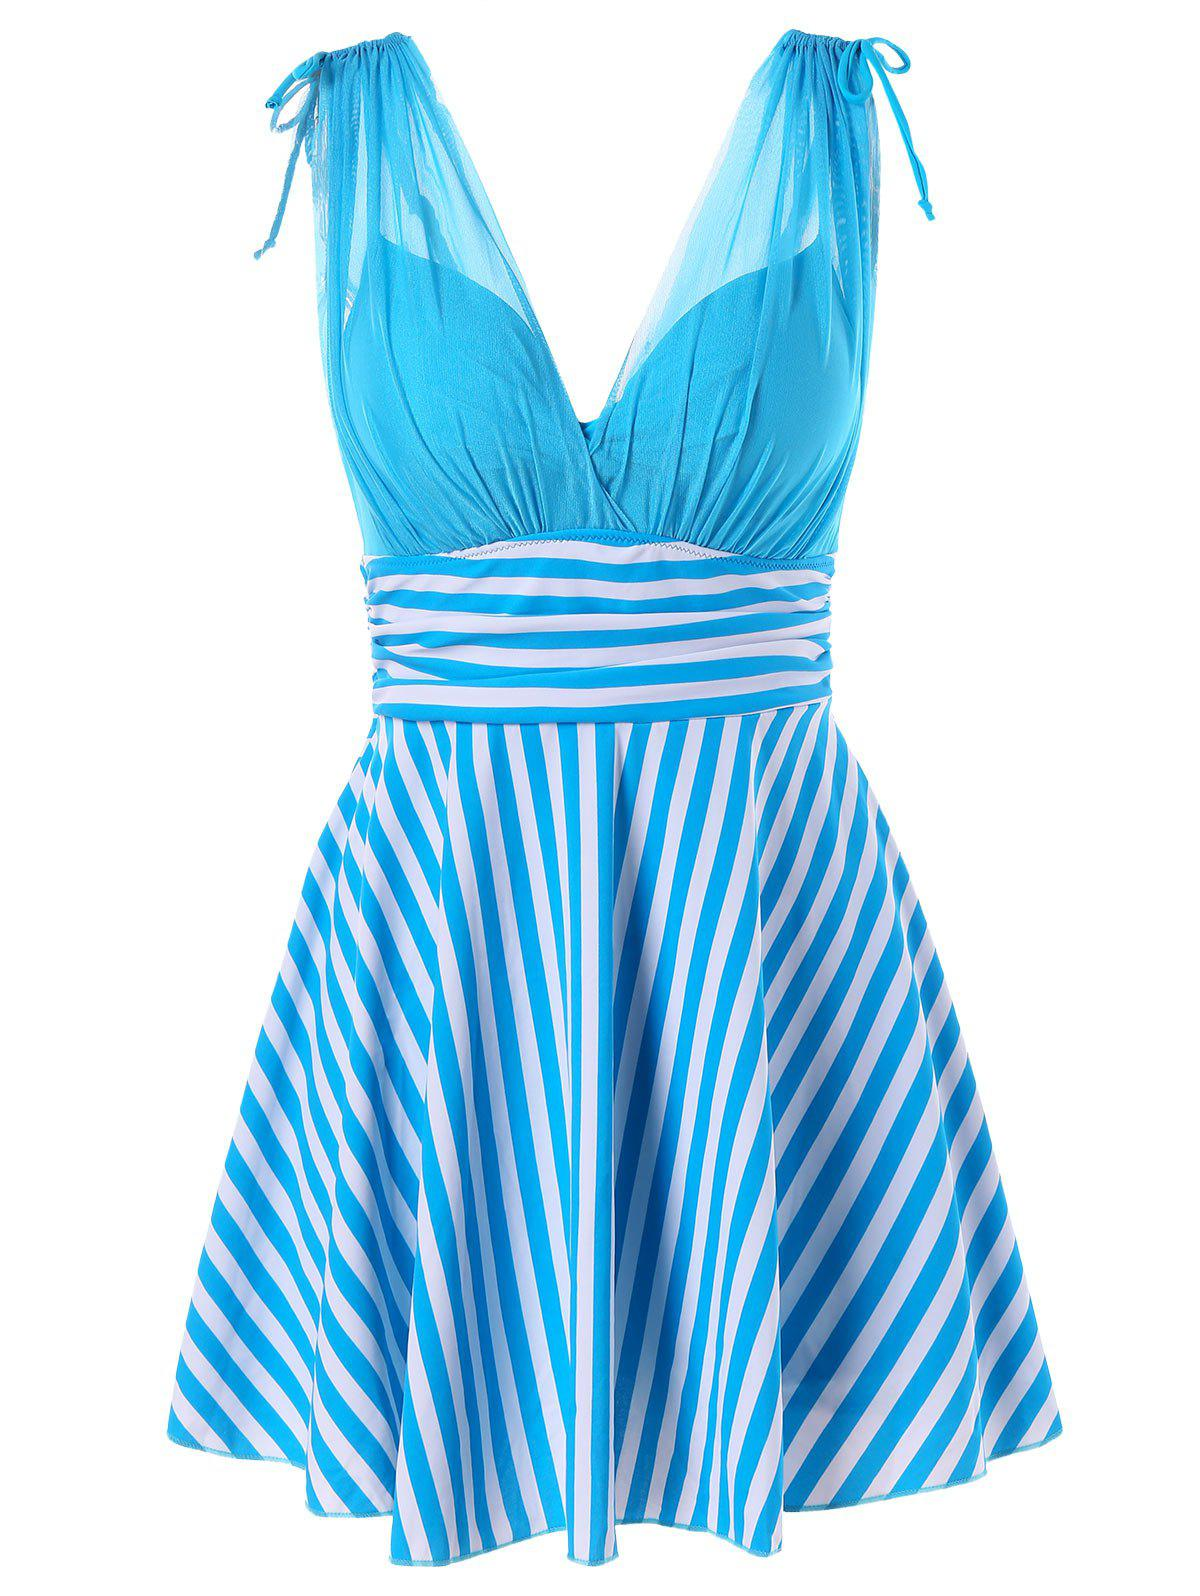 Empire Waist One Piece Stripe Skirted Swimsuit - BUTTERFLY BLUE L